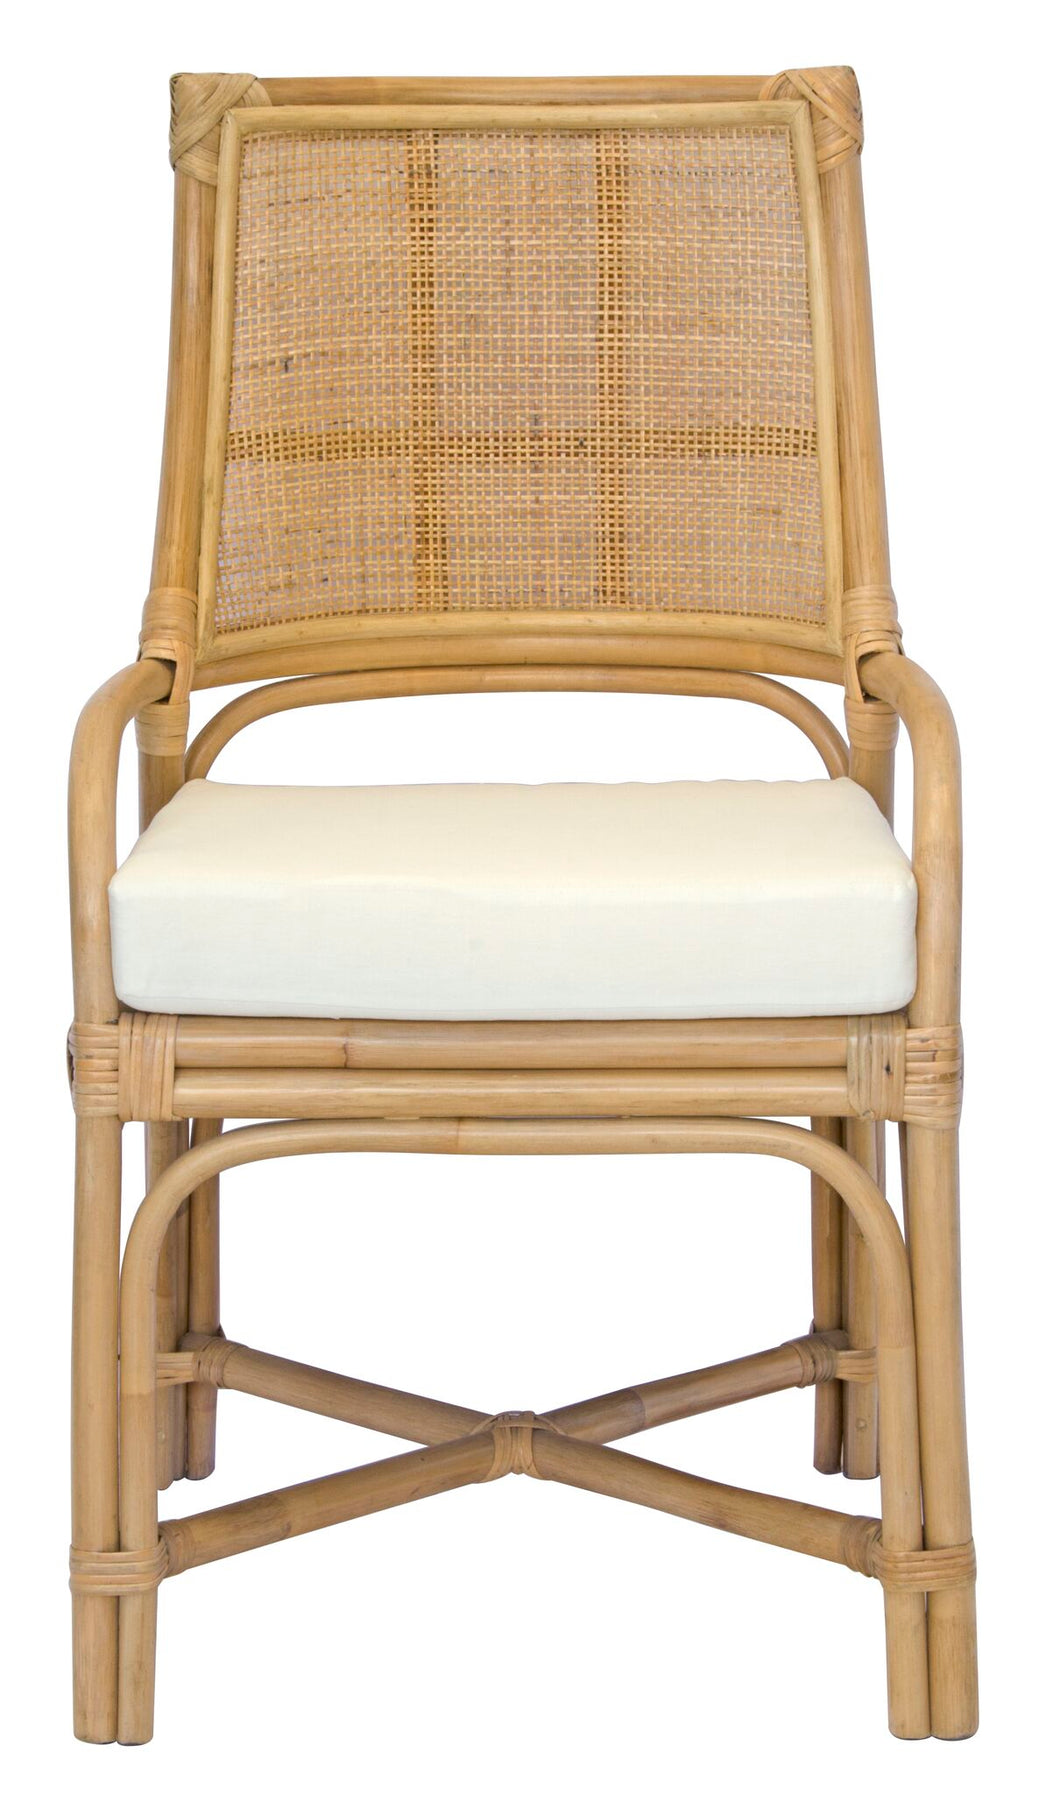 Adina Dining Chair - Natural